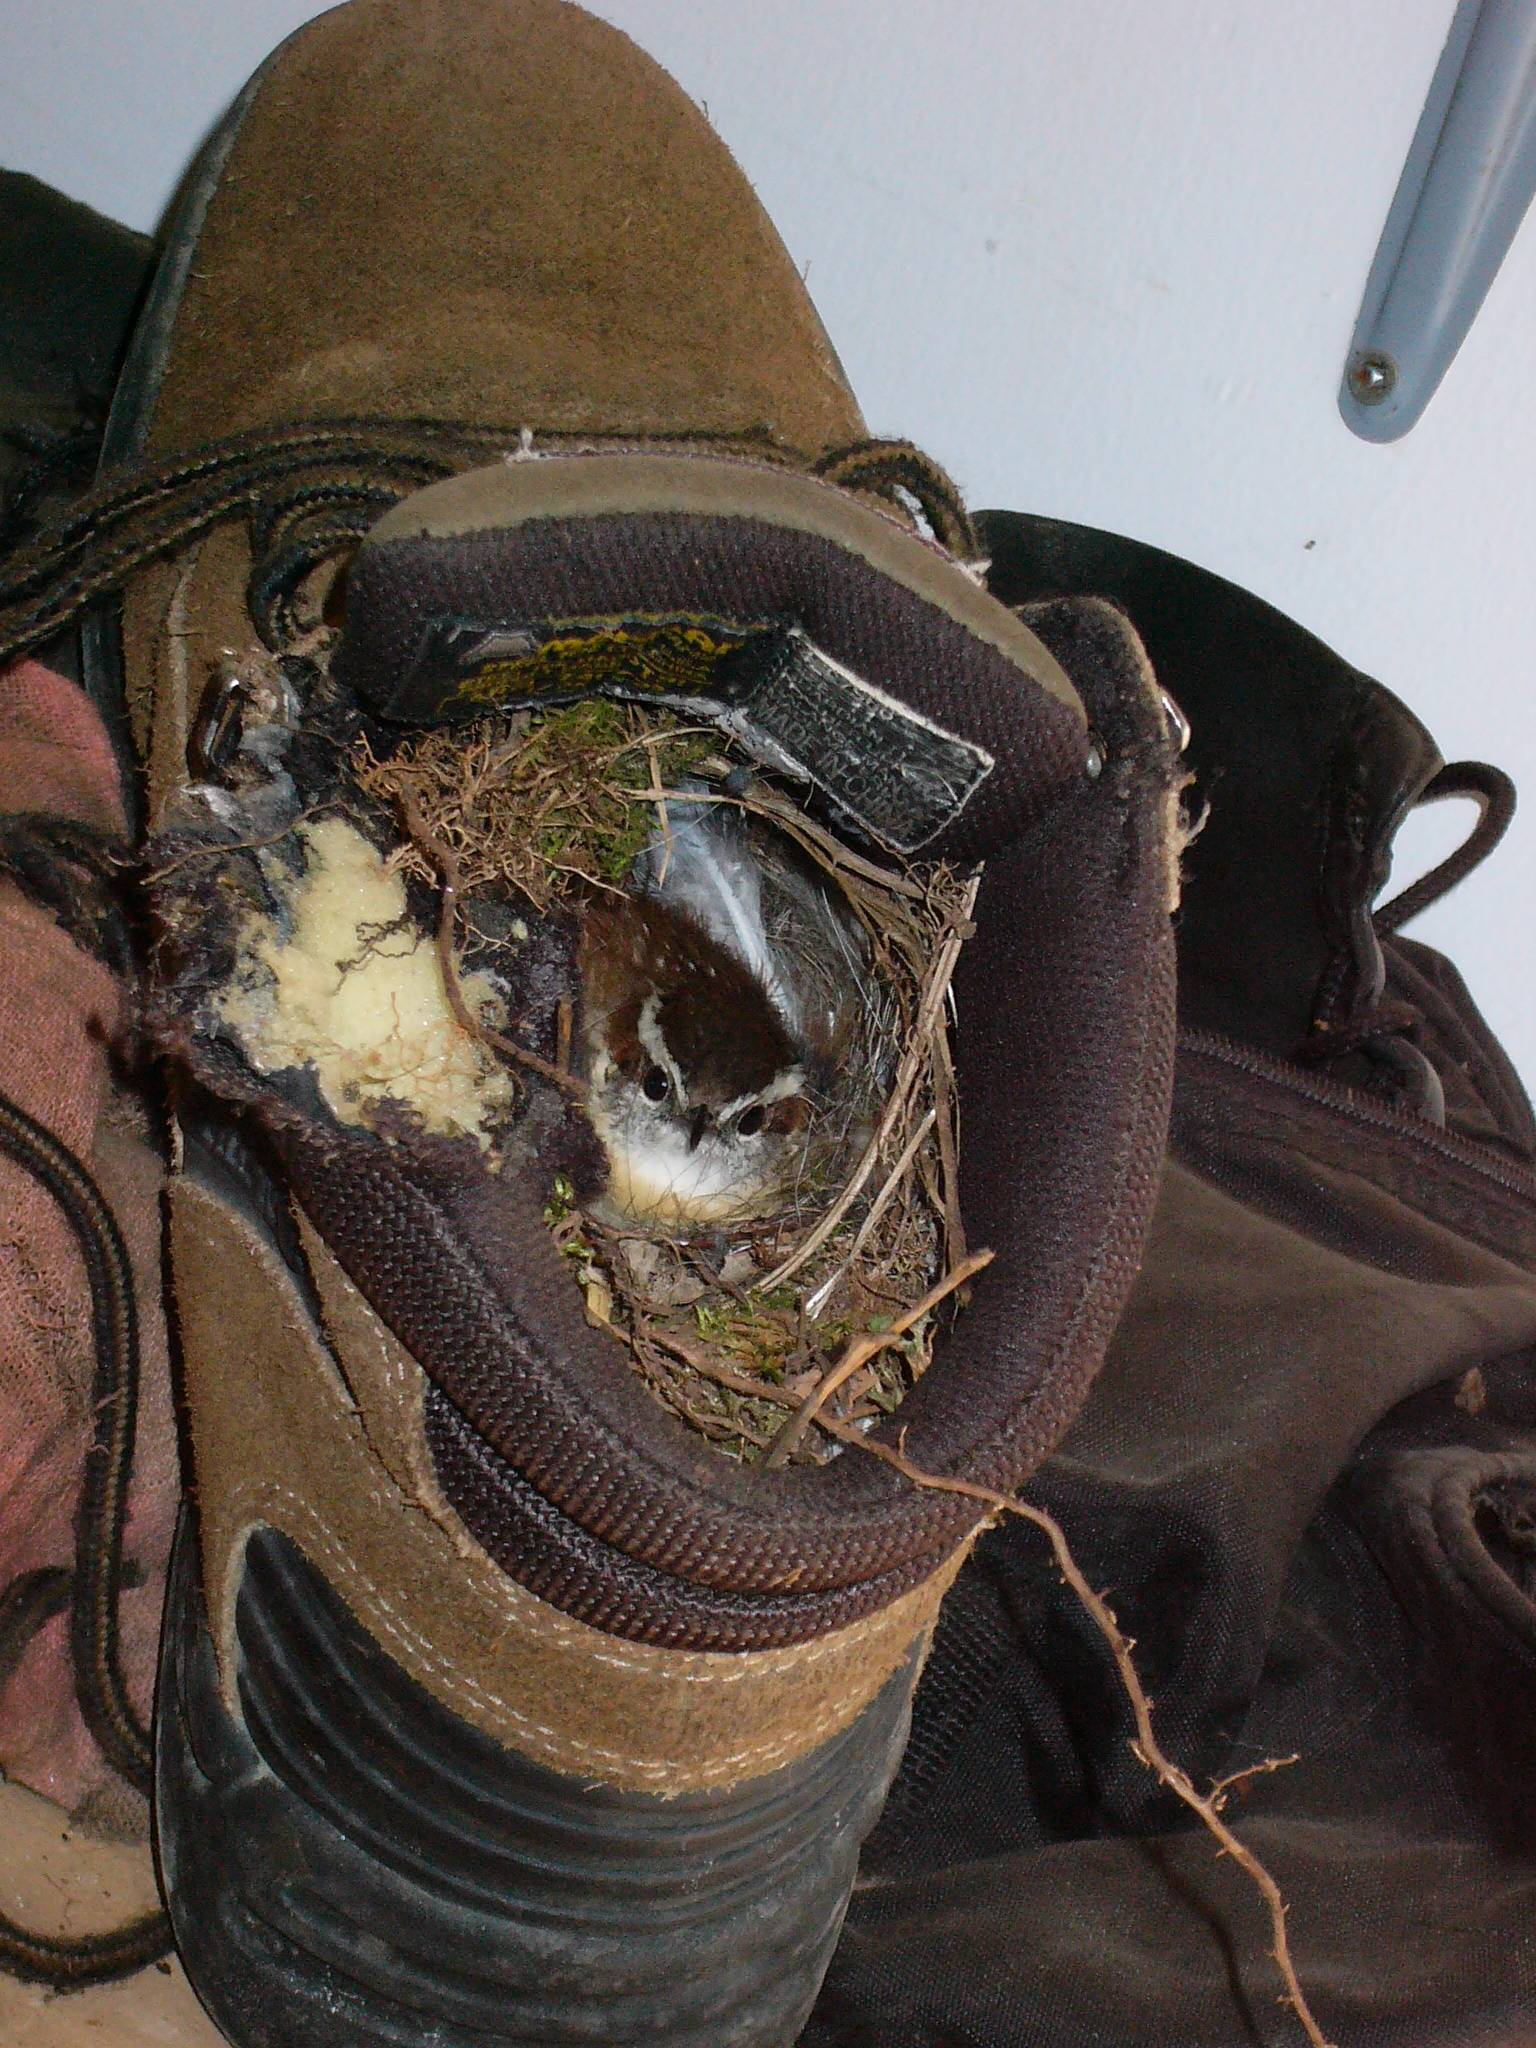 Bird nesting in a boot - SashaPanther - bit.ly2osdwPU